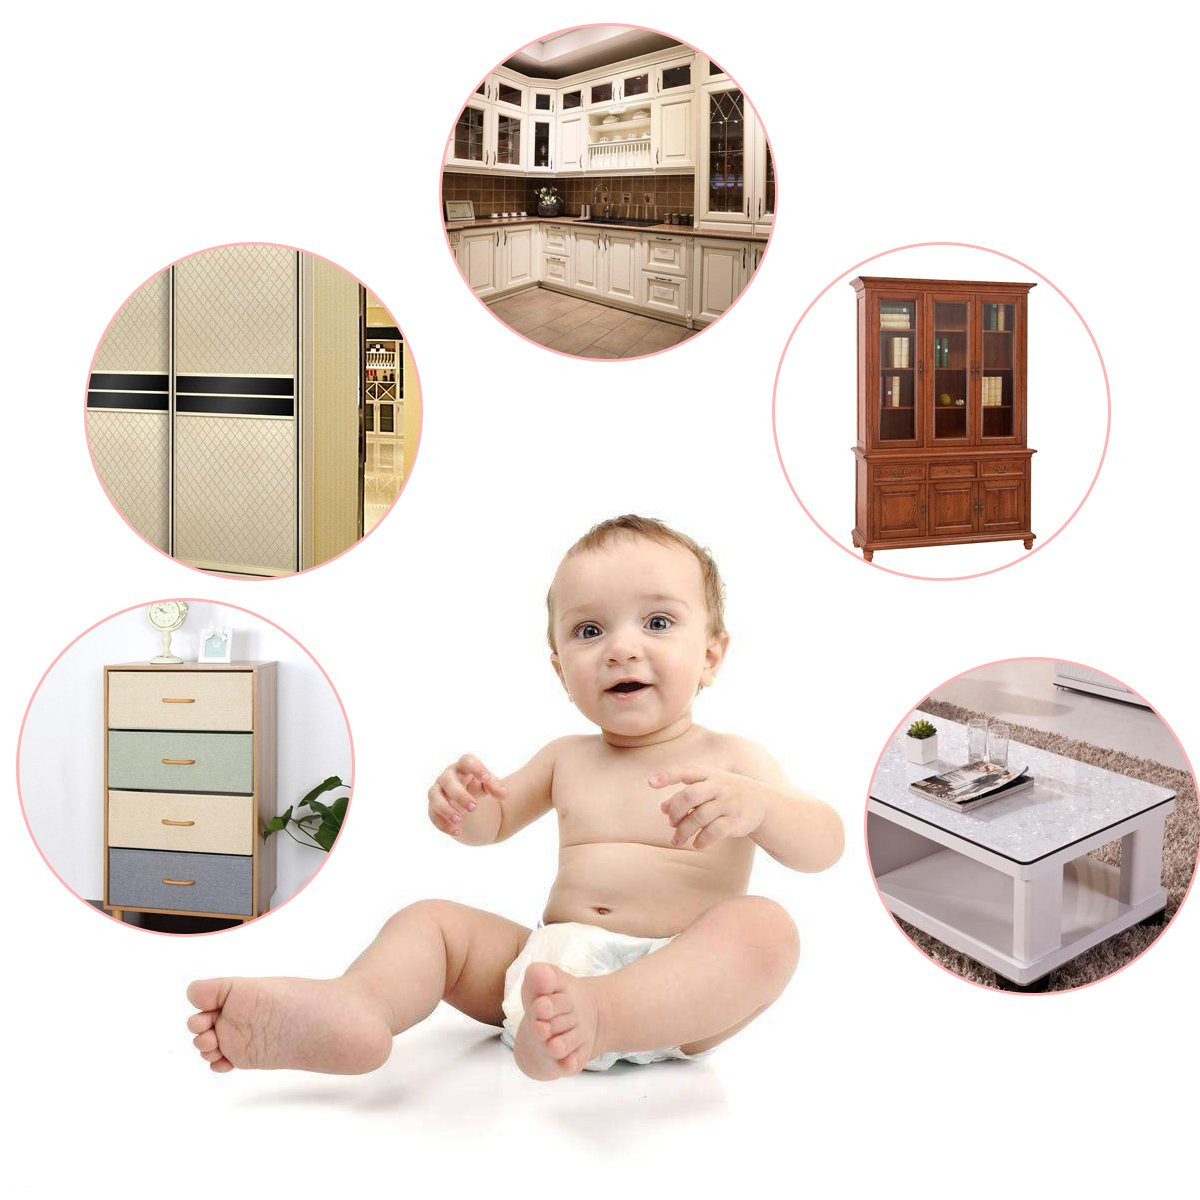 10 Pack Child Satety Locks Baby Safety Cabinet Door Fridge Drawer Appliances Cupboard Locks +20 Pack Corner Protector Baby Safety Proof Corner Guards Against Sharp Corners by Tonifa by Tonifa (Image #4)